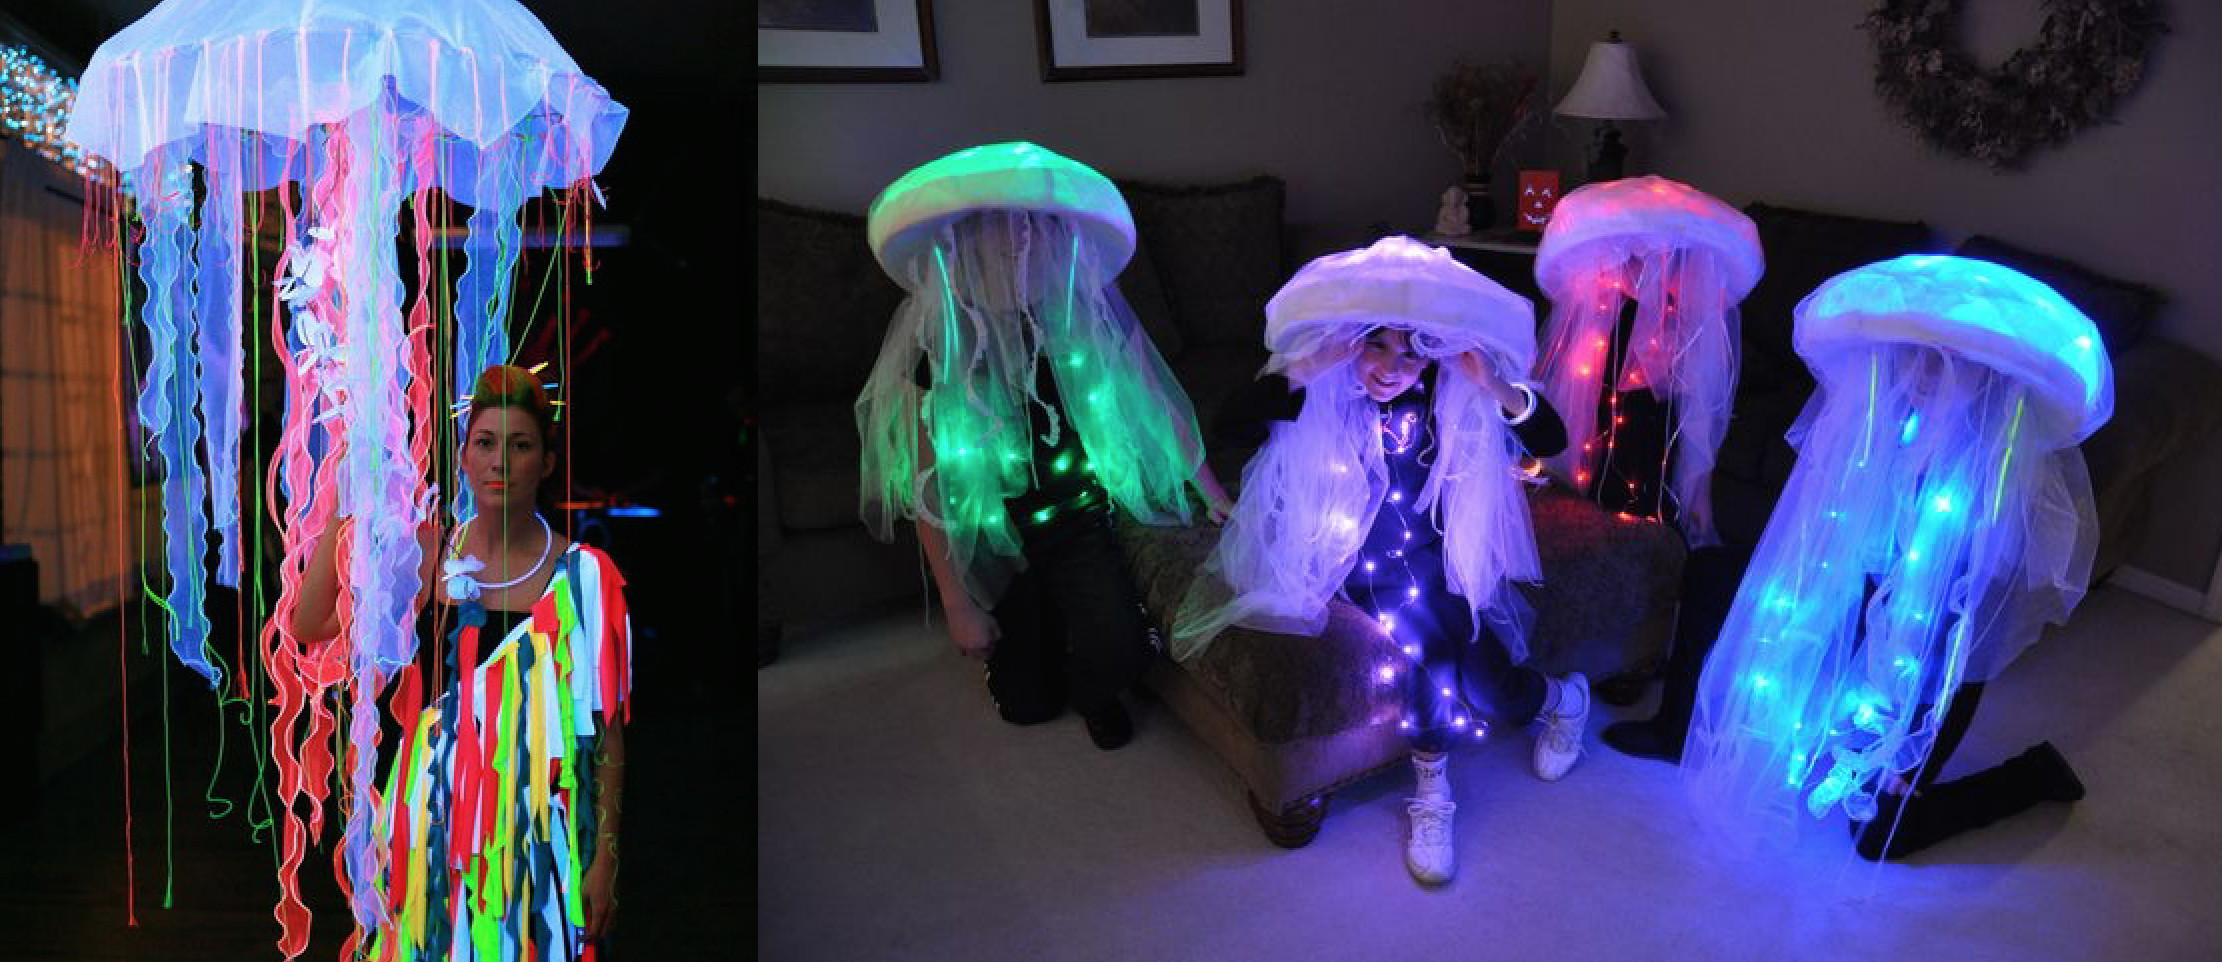 Jellyfish Costume DIY  Turn heads at any Halloween party with one of these high